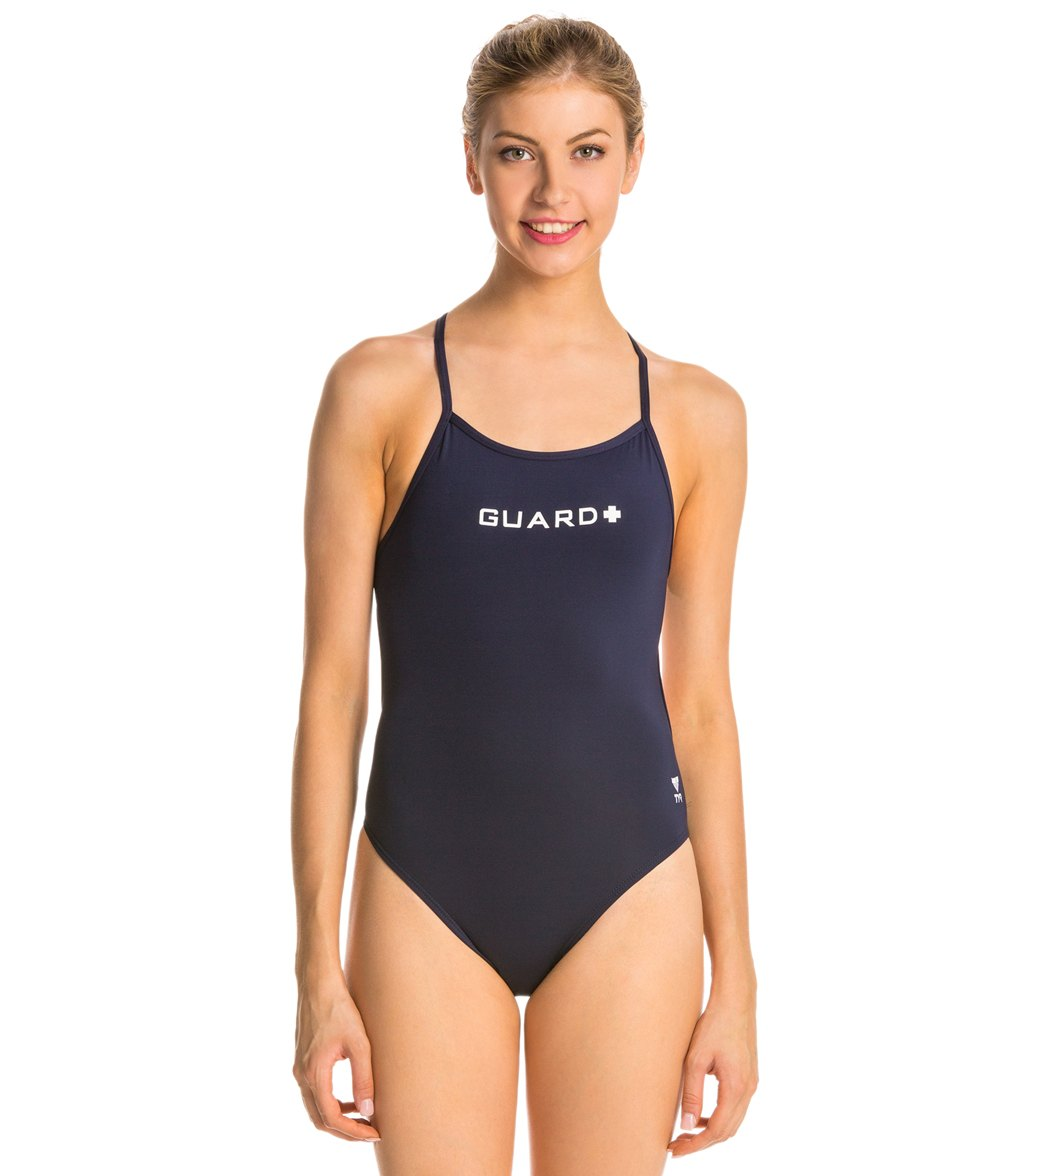 597278616dcf0 TYR LifeLifeguard Durafast Lite Crosscutfit One Piece Swimsuit at  SwimOutlet.com - Free Shipping